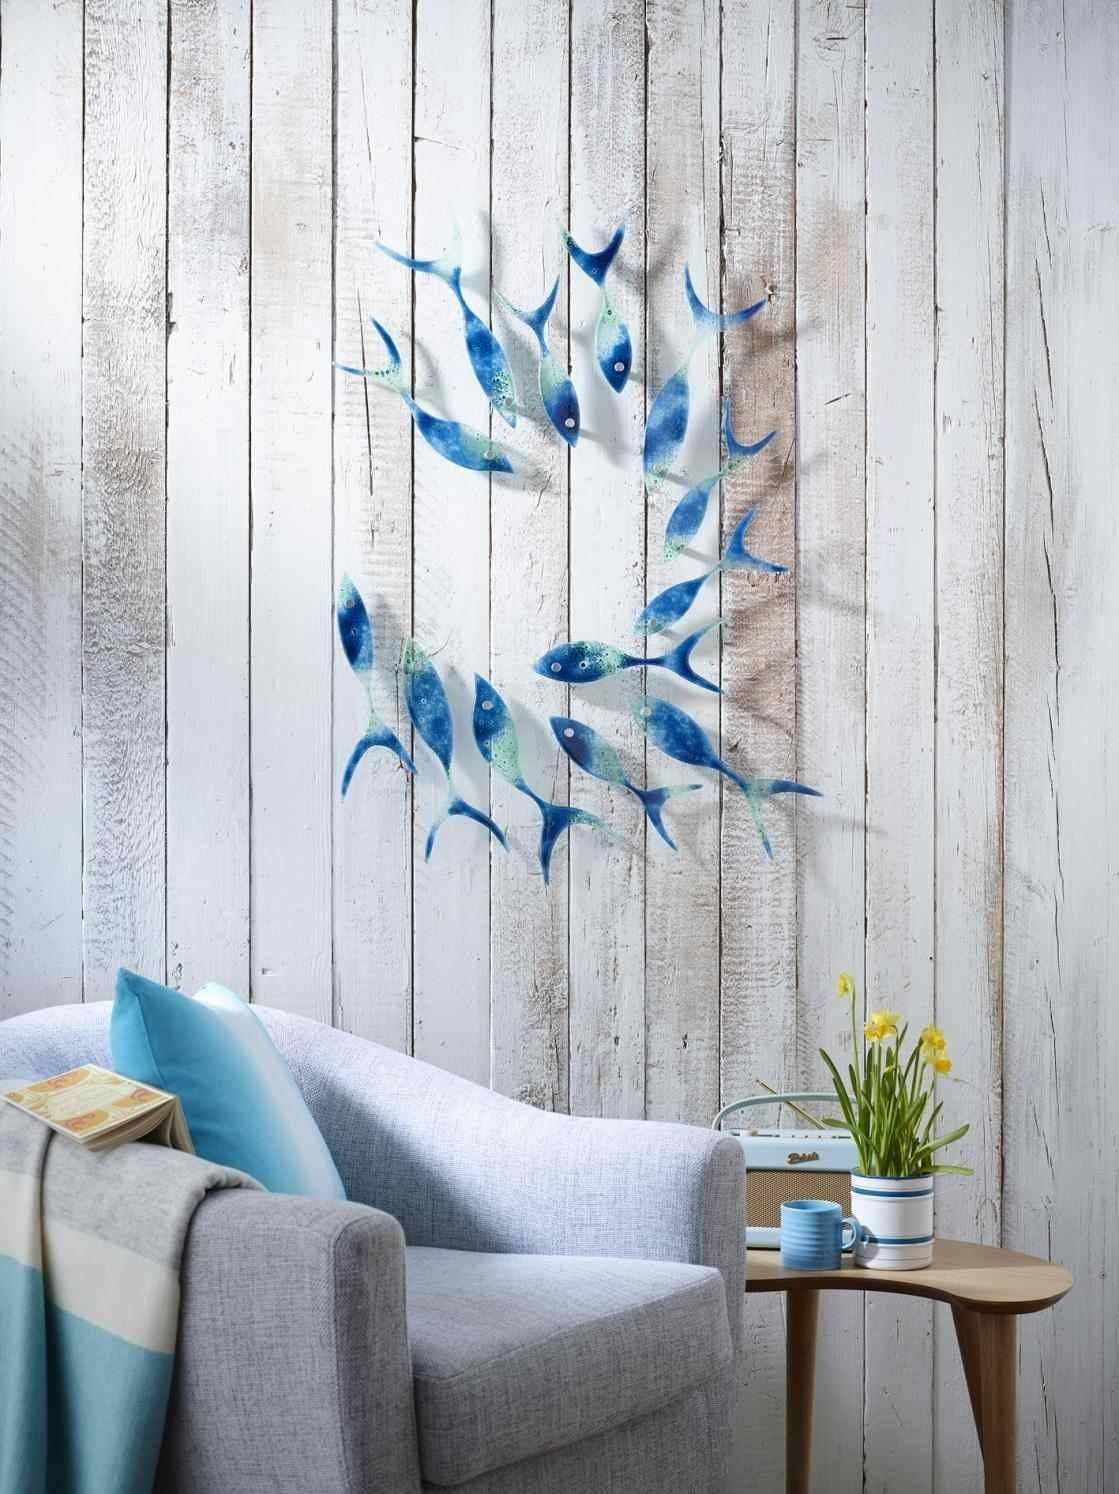 Metal Wall Art Fish Shoal | Home Interior Decor Throughout Most Popular Fish Shoal Metal Wall Art (View 3 of 30)